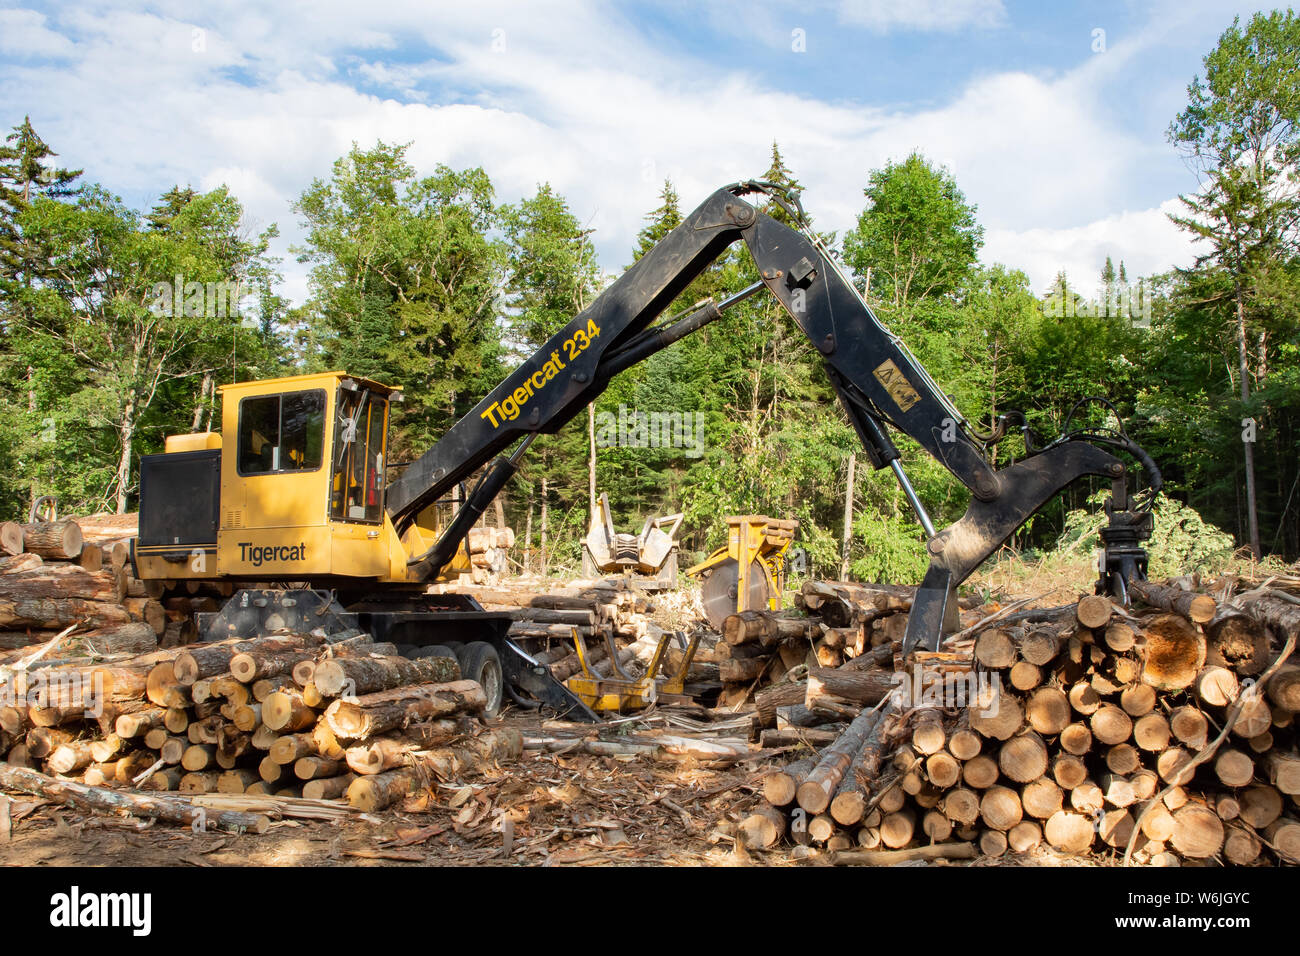 Log Saw Stock Photos & Log Saw Stock Images - Alamy